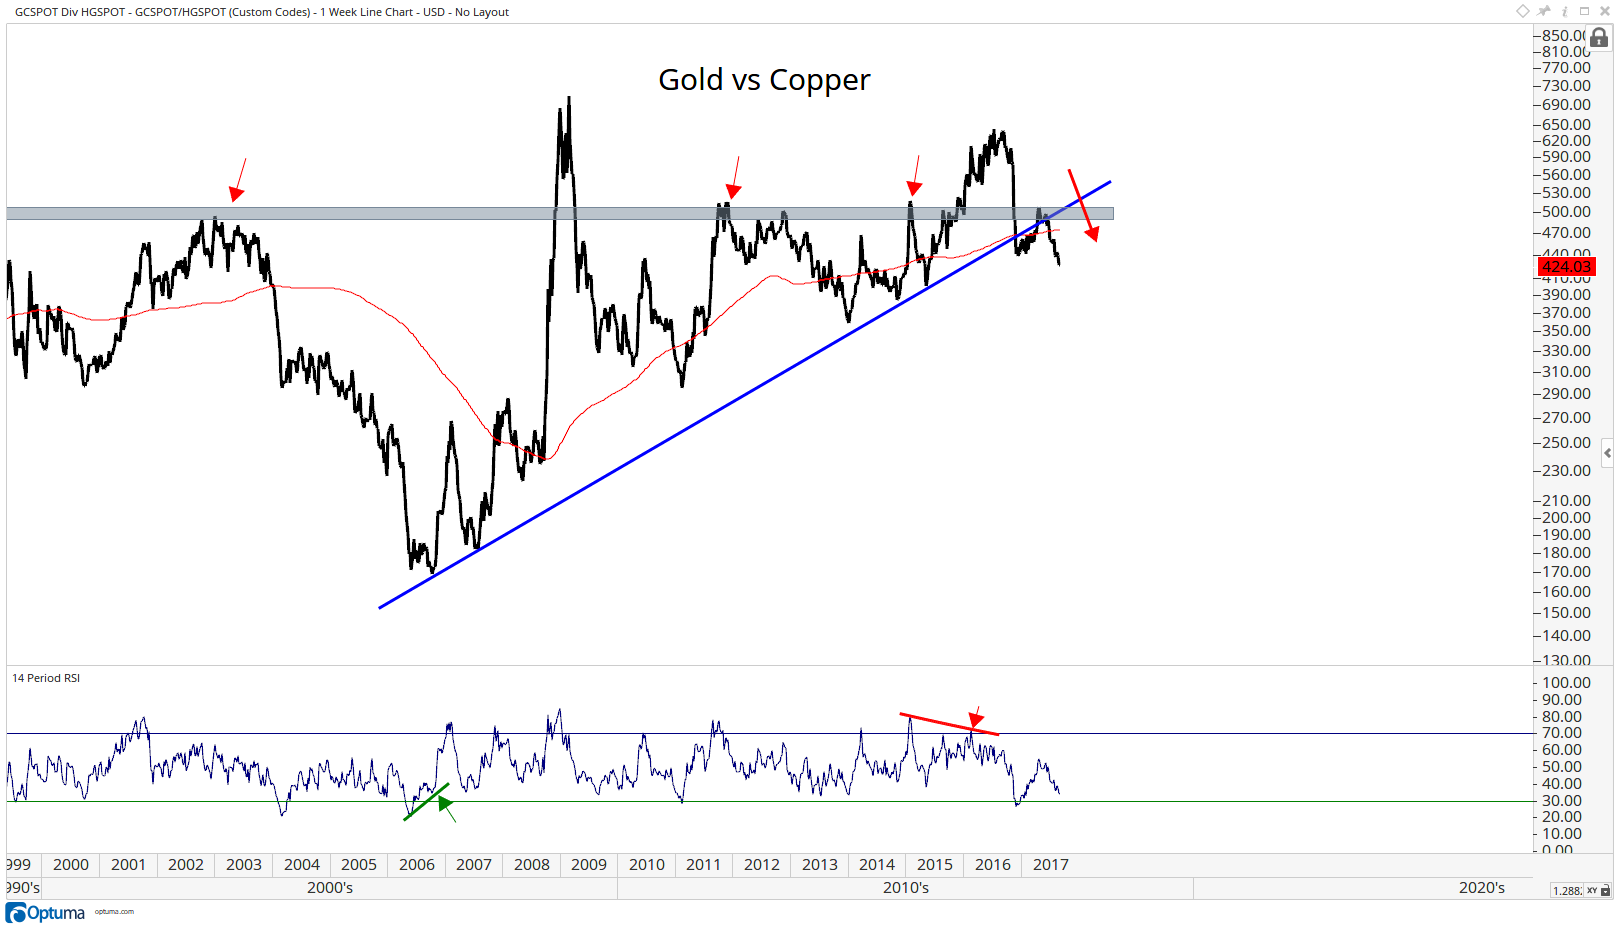 Gold vs Copper